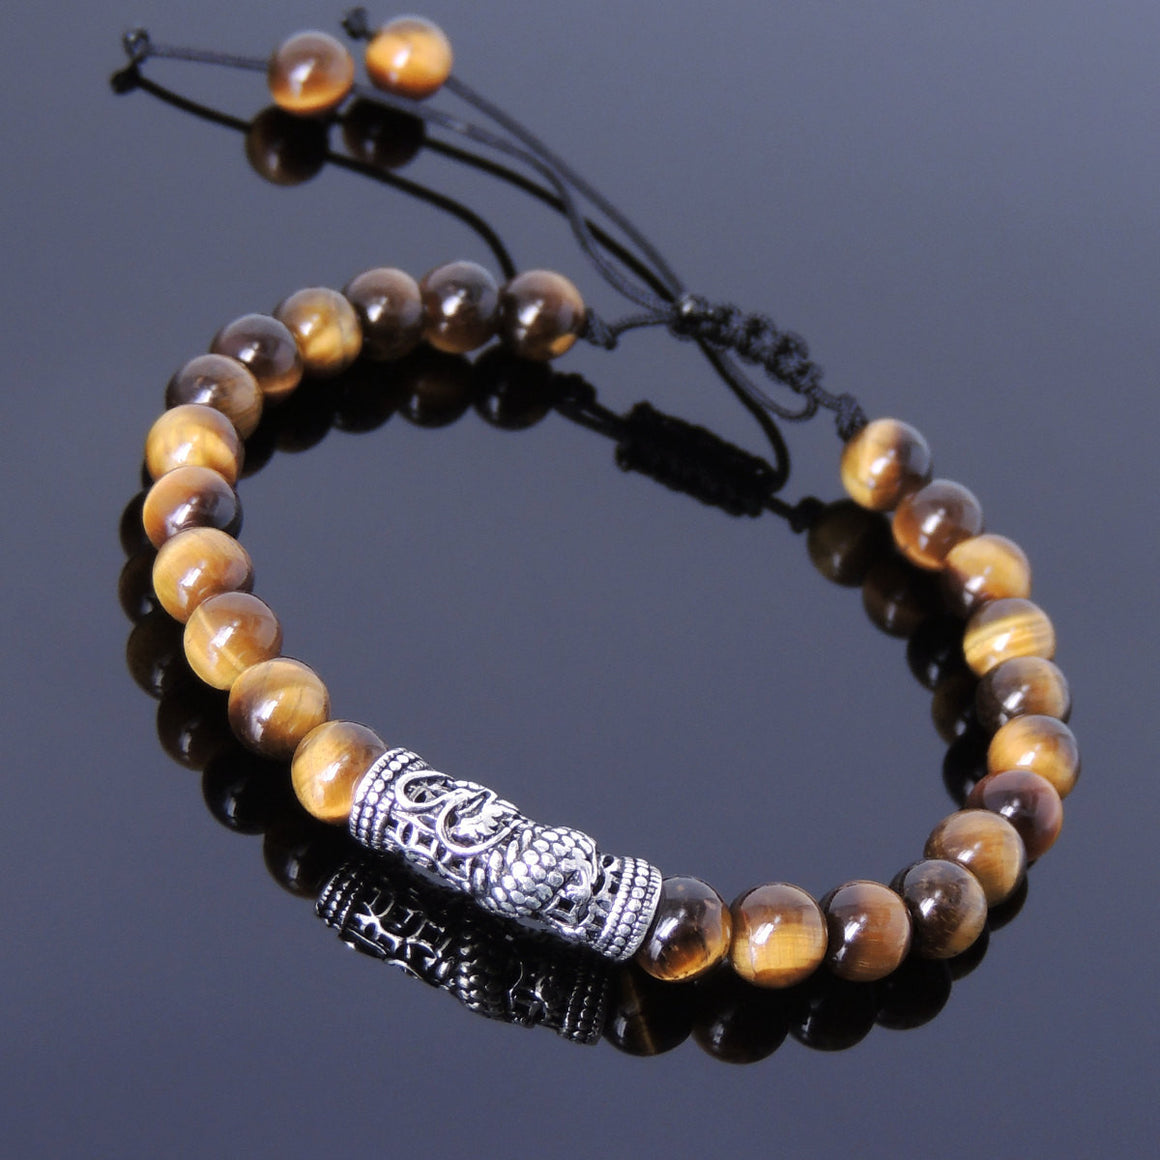 6mm Brown Tiger Eye Adjustable Braided Gemstone Bracelet with S925 Sterling Silver Dragon Charm - Handmade by Gem & Silver BR783